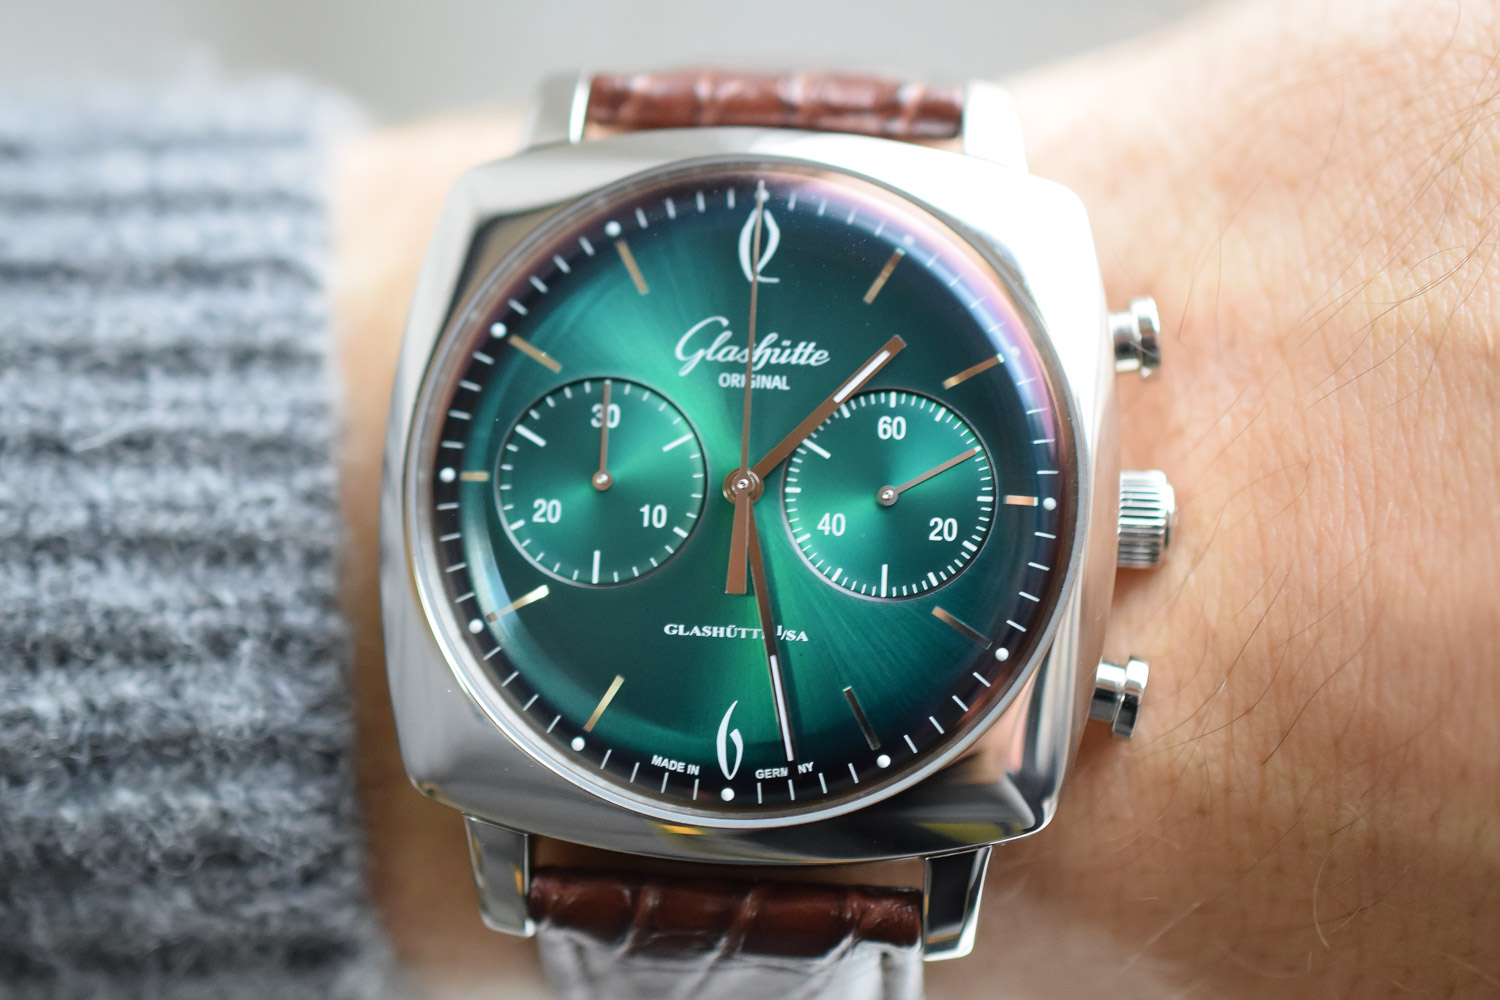 Glashütte Original Makes Colourful Showing At The 67th Berlinale